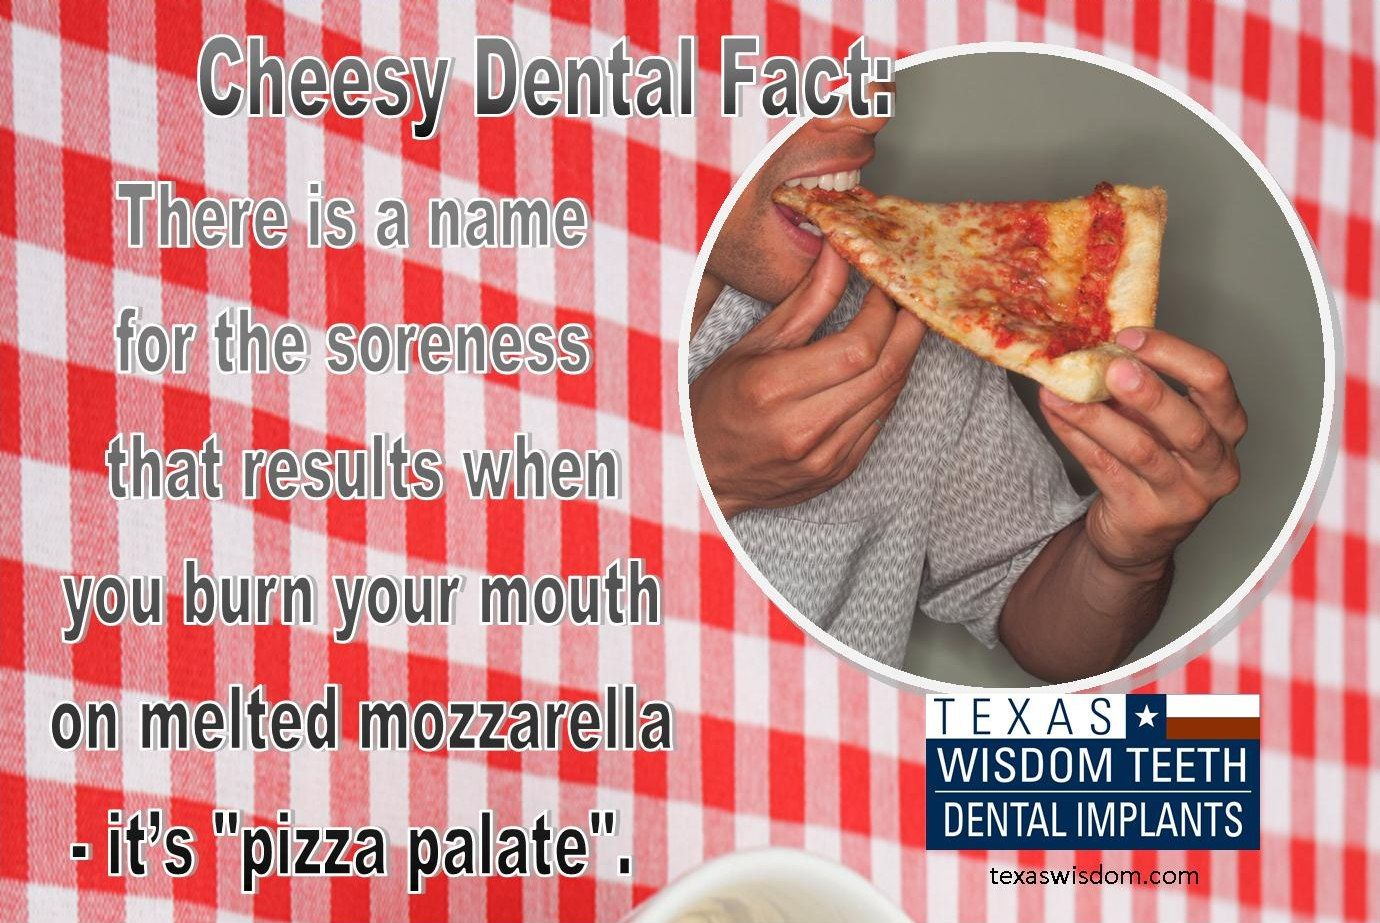 Dental Implant Quotes Pizza Palate  Medical Humor  Pinterest  Pizzas Dental And